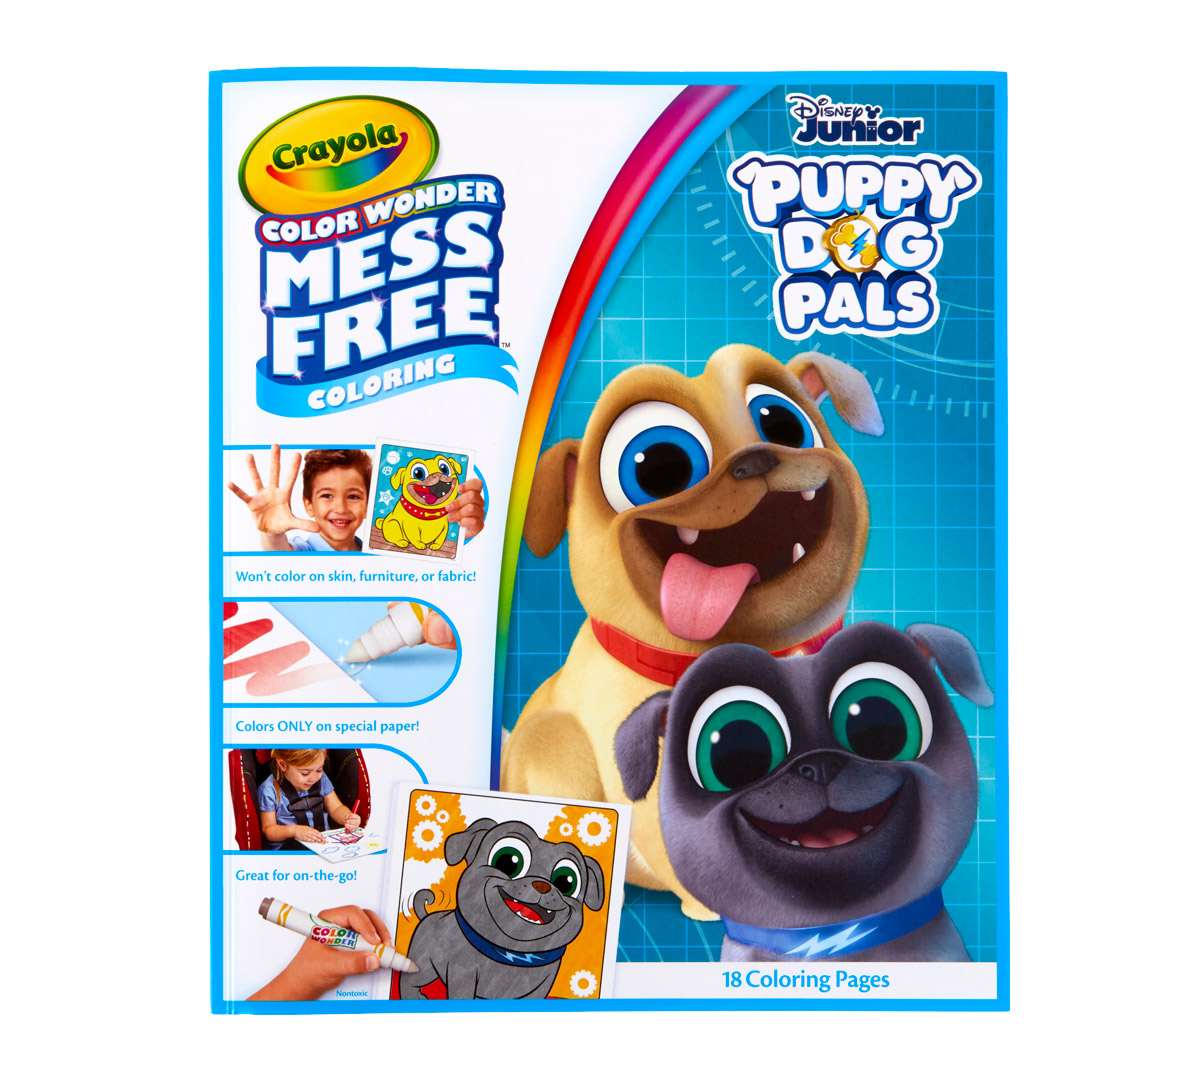 Color Wonder Mess Free Puppy Dog Pals Book